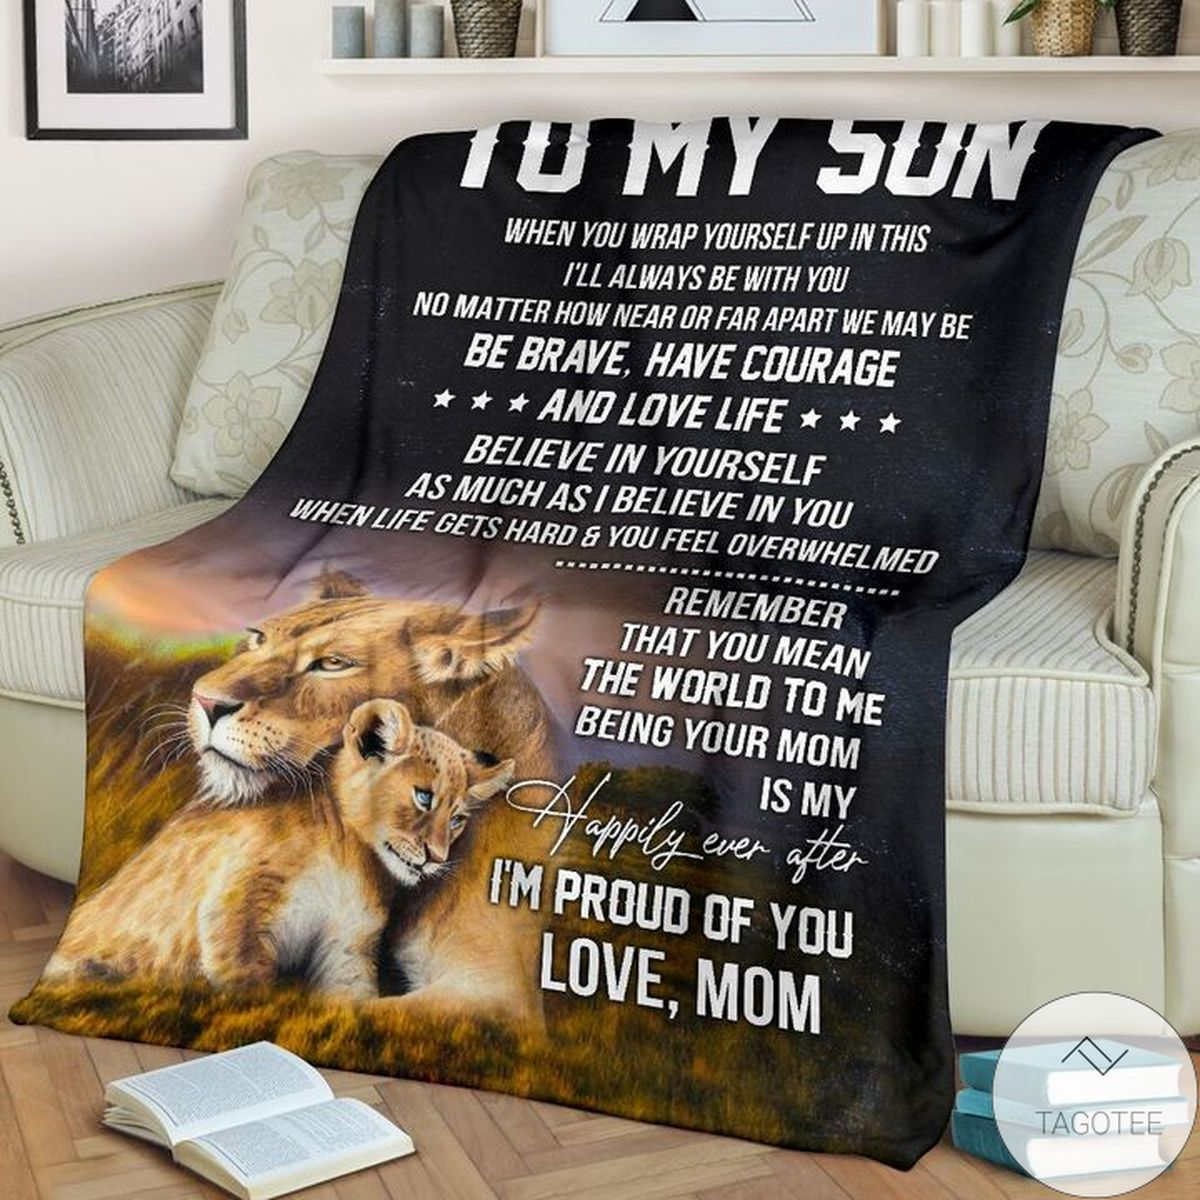 To My Son I'm Proud Of You Love Mom Blanket